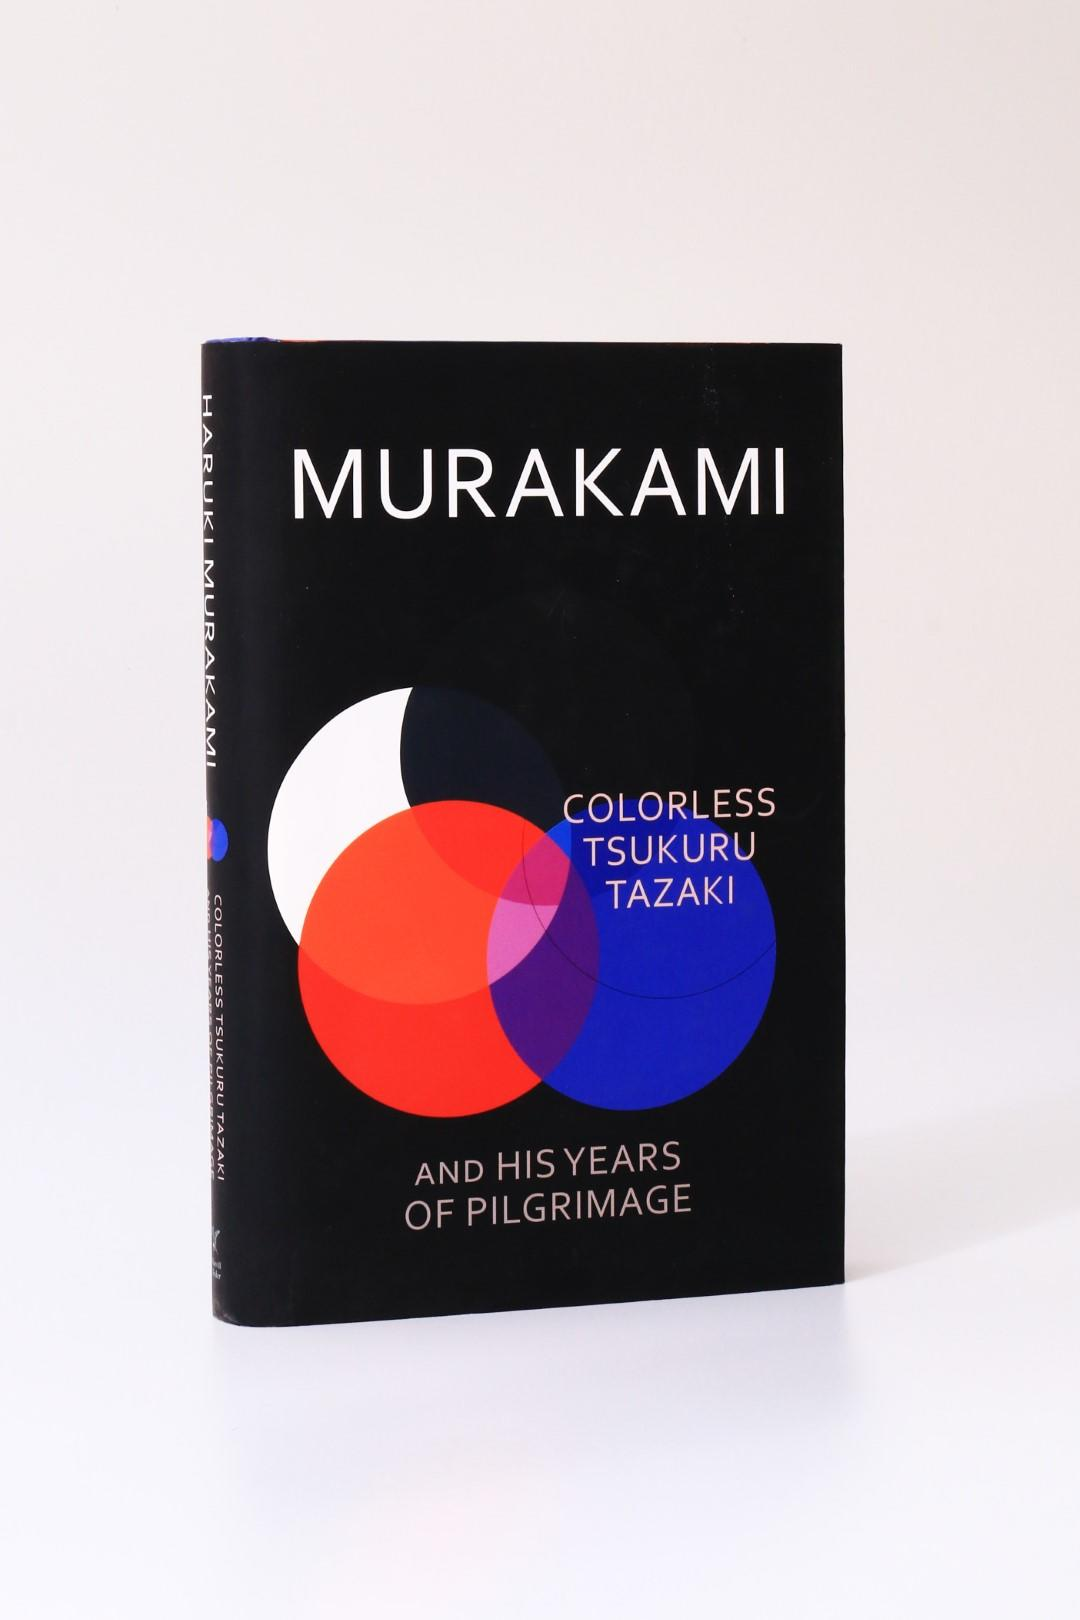 Haruki Murakami - Colorless Tsukuru Tazaki and his Years of Pilgrimage - Harvill Secker, 2014, Signed First Edition.